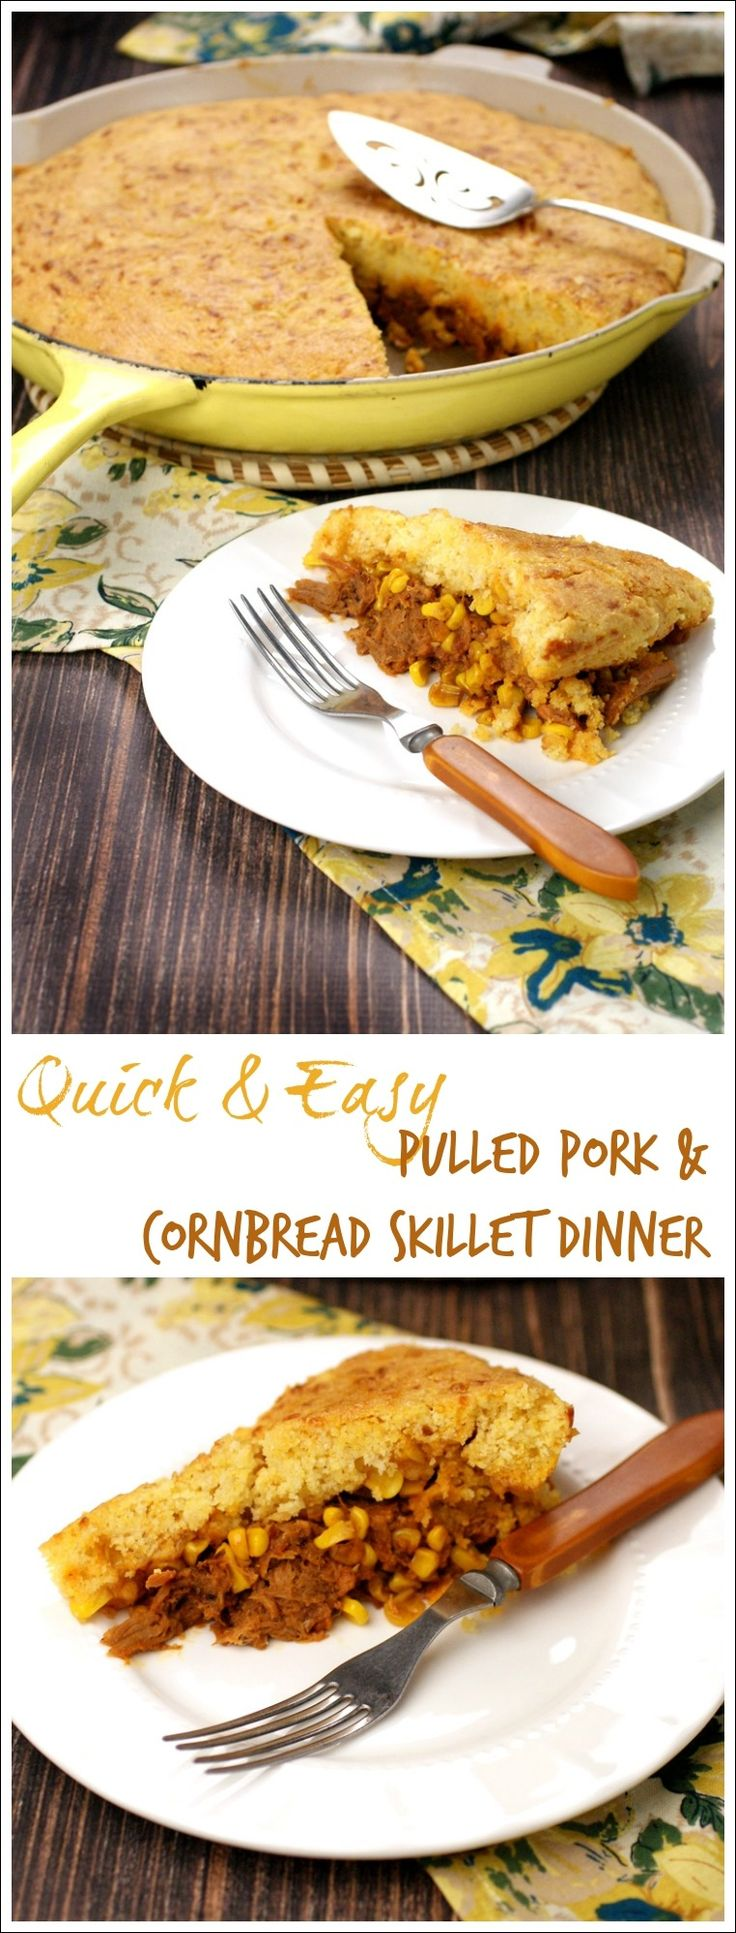 Looking for a one pot gluten free recipe? Get this Quick Easy Pulled Pork Cornbread Skillet Dinner at This Mama Cooks! On a Diet. This weeknight dinner takes less than 20 minutes to prep and 30 minutes to cook!